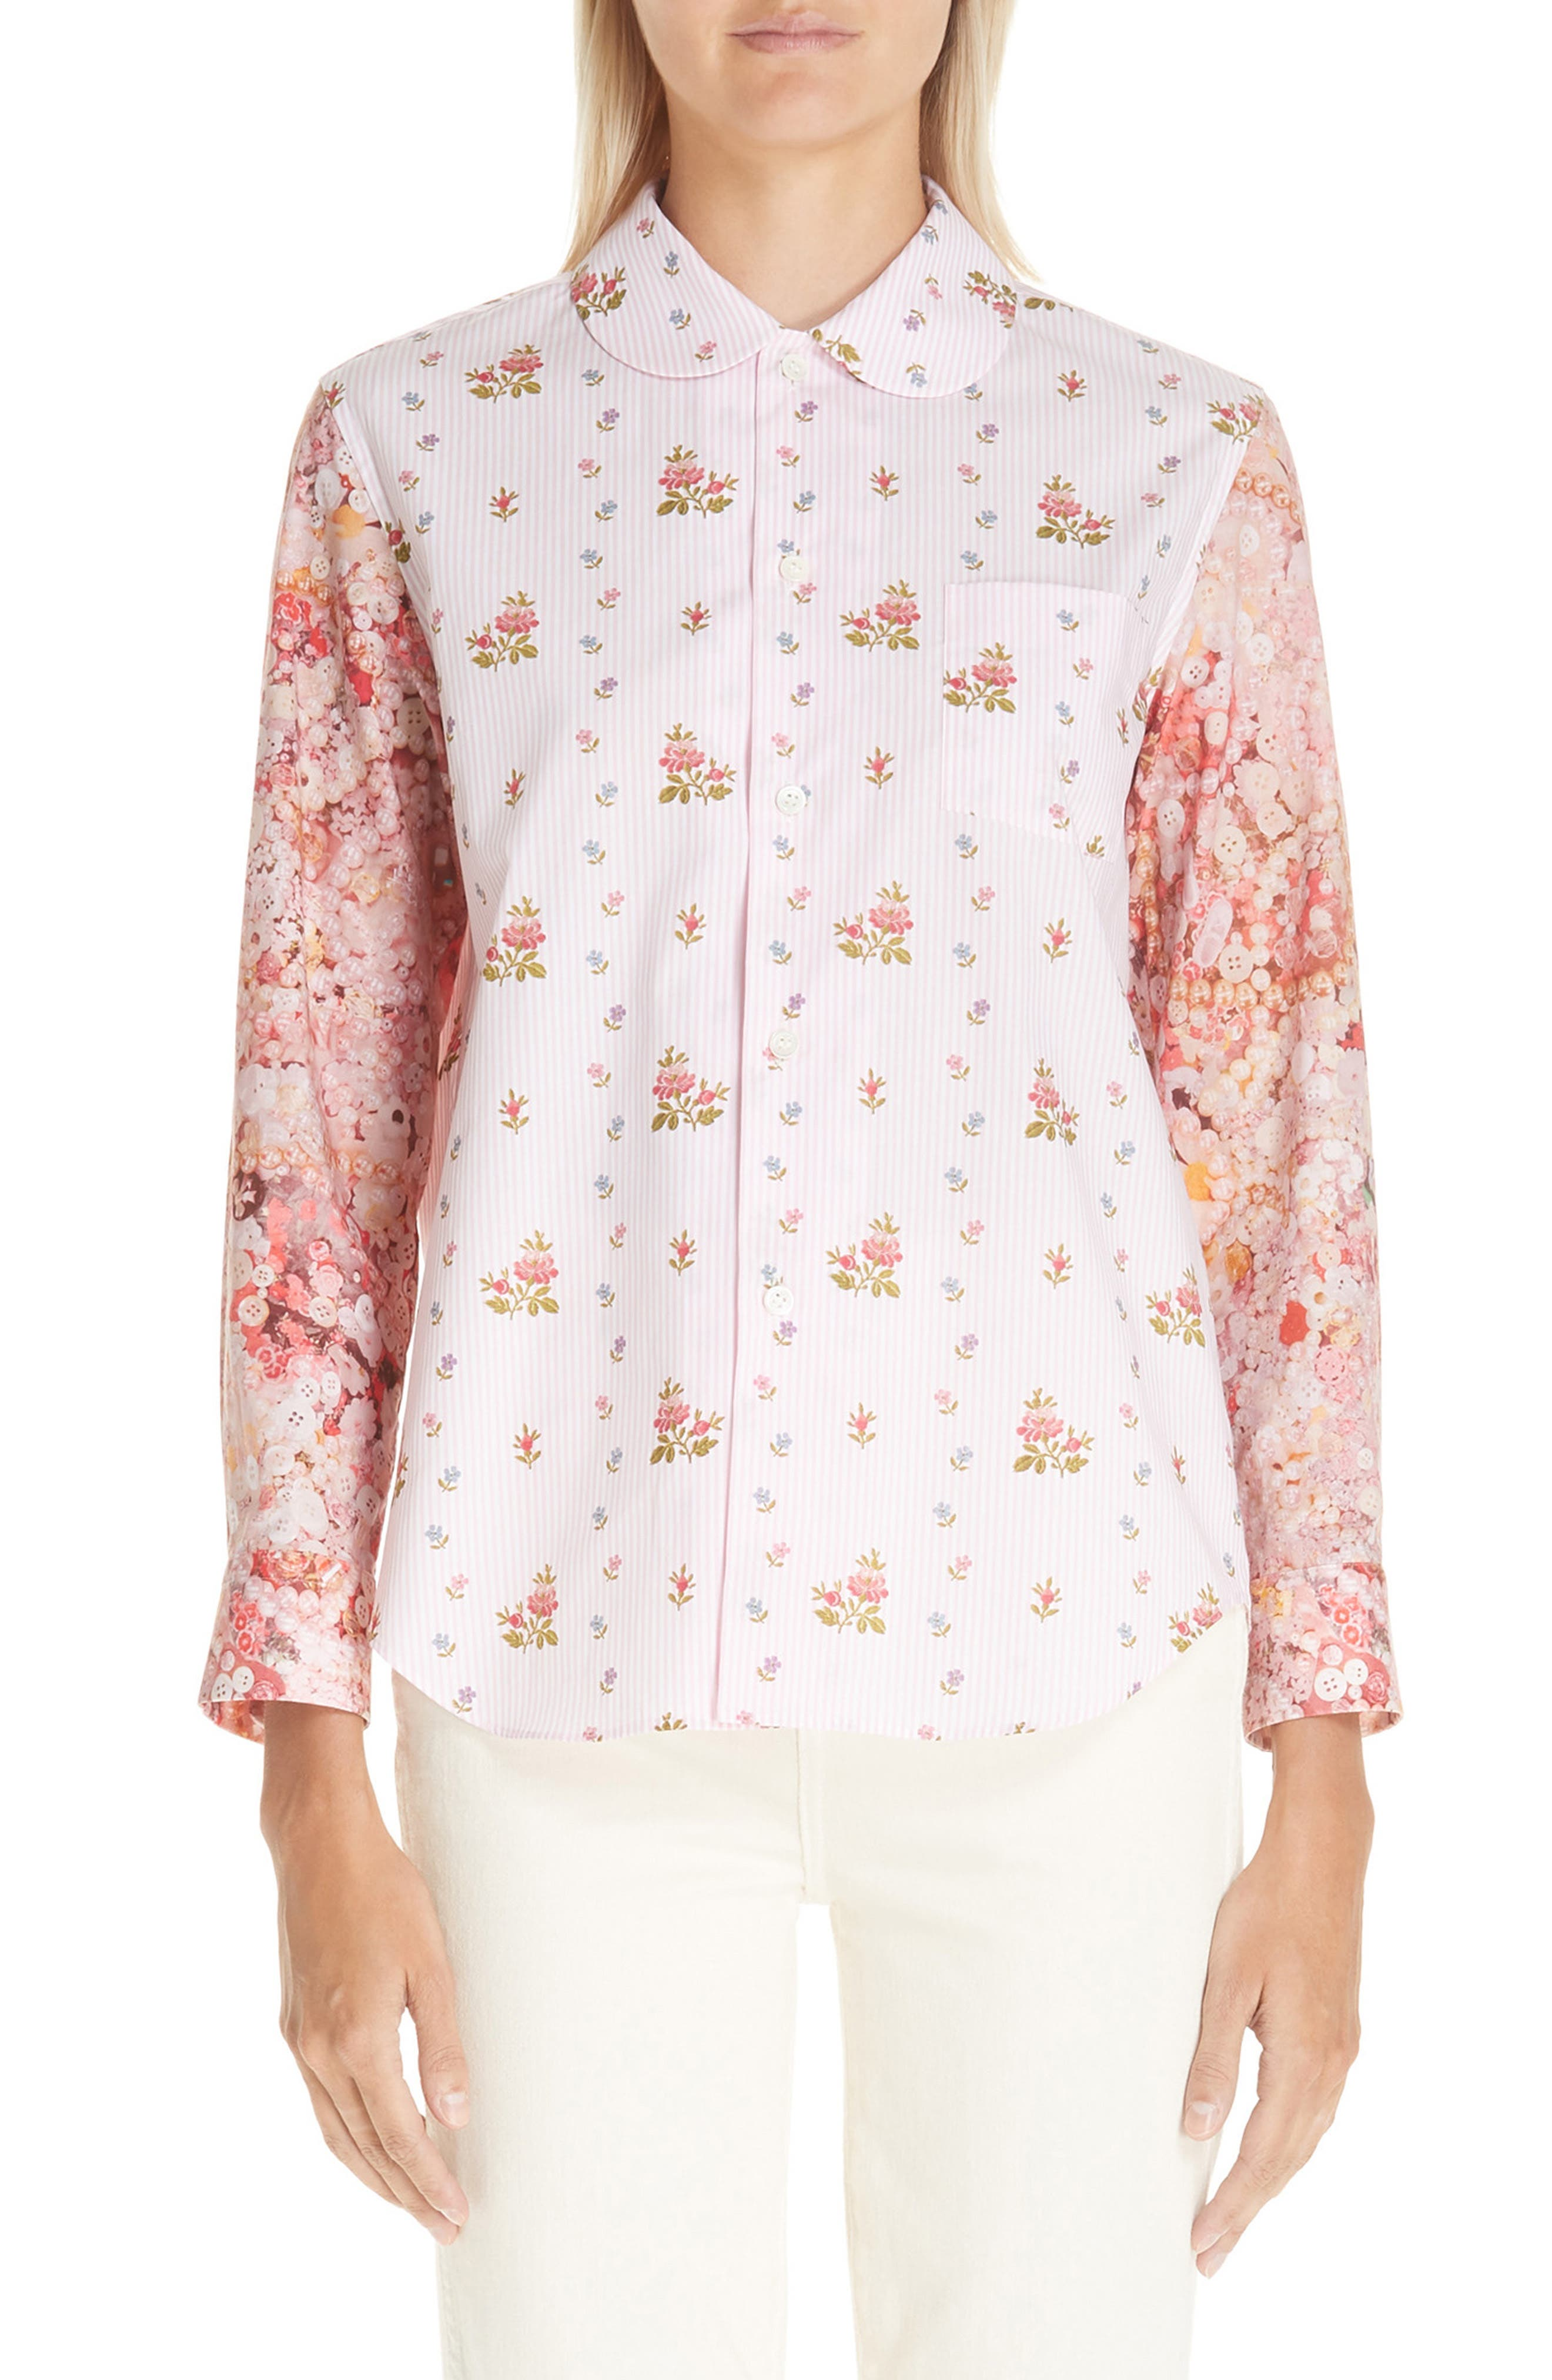 TRICOT COMME DES GARCONS Floral Print Cotton Shirt in Pink X Pink